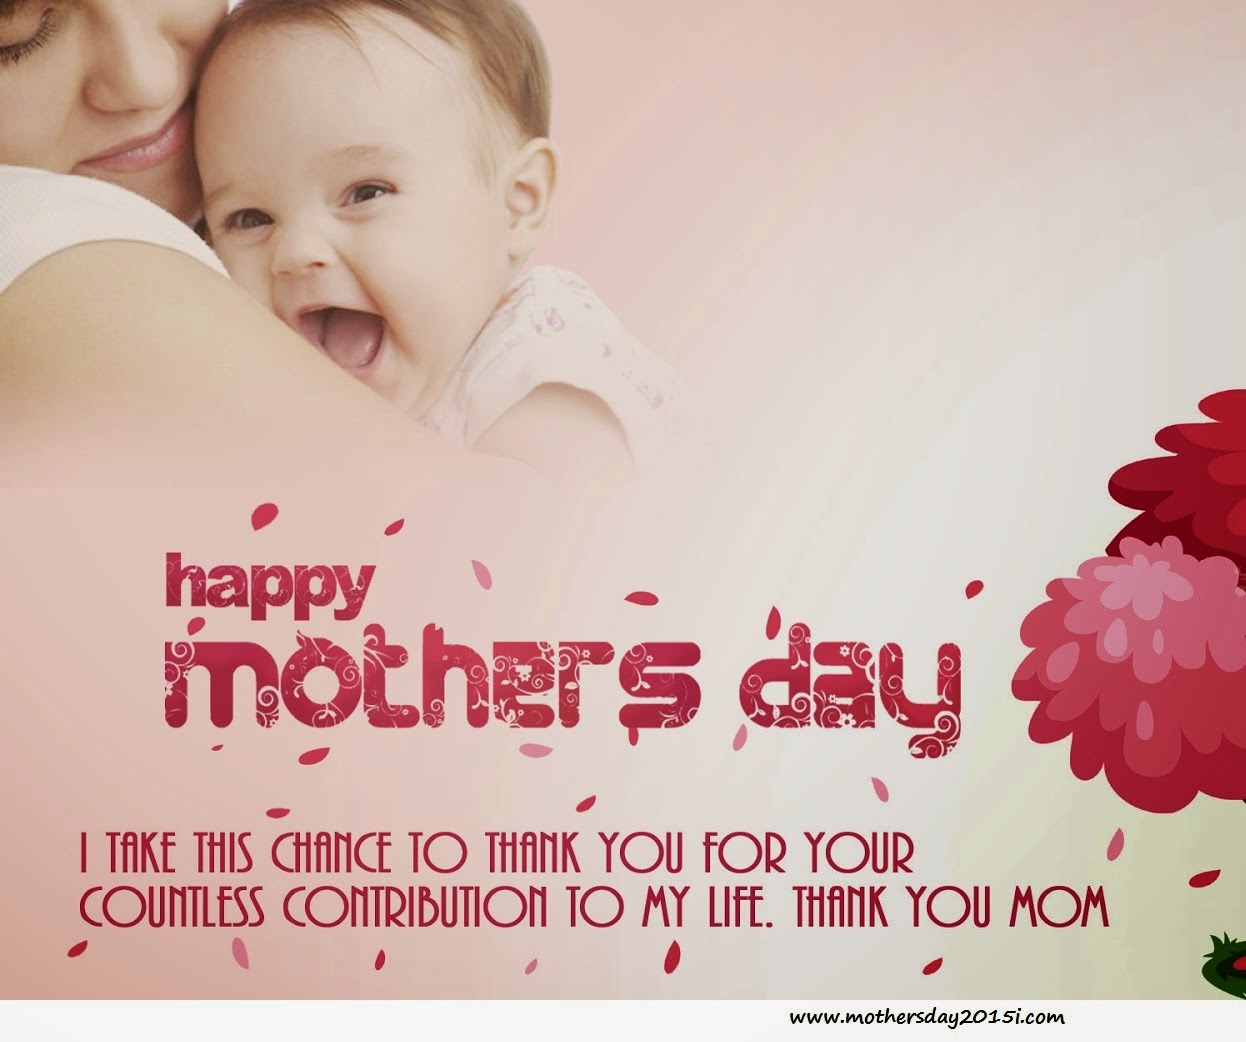 Happy Mothers Day Daughter Quotes. QuotesGram